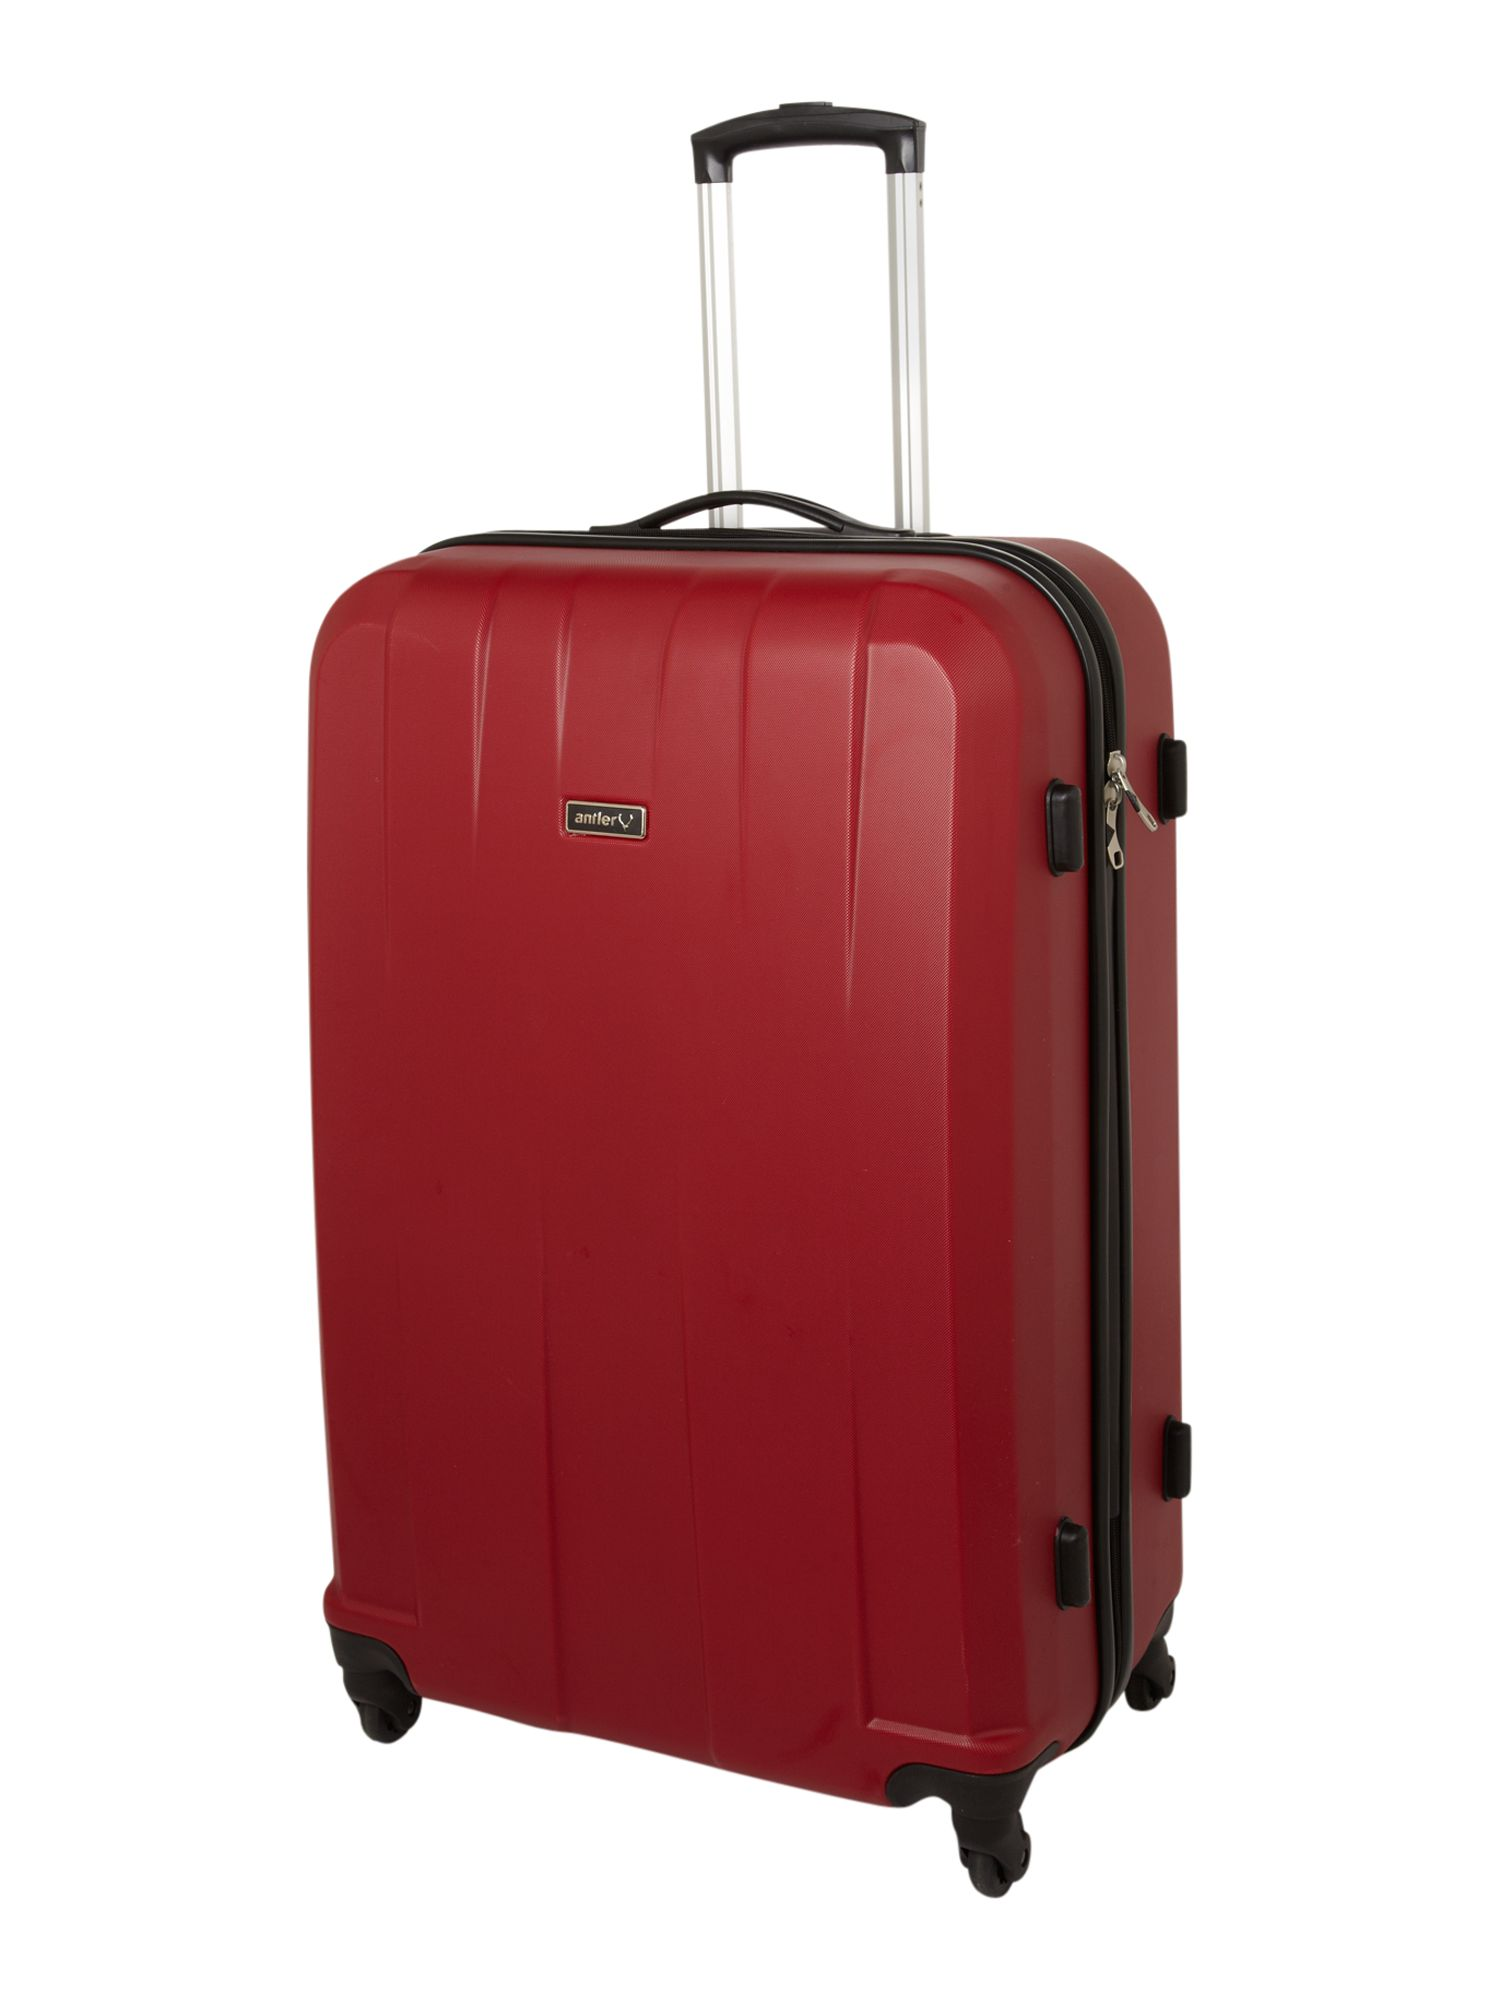 Quadrant red suitcase range